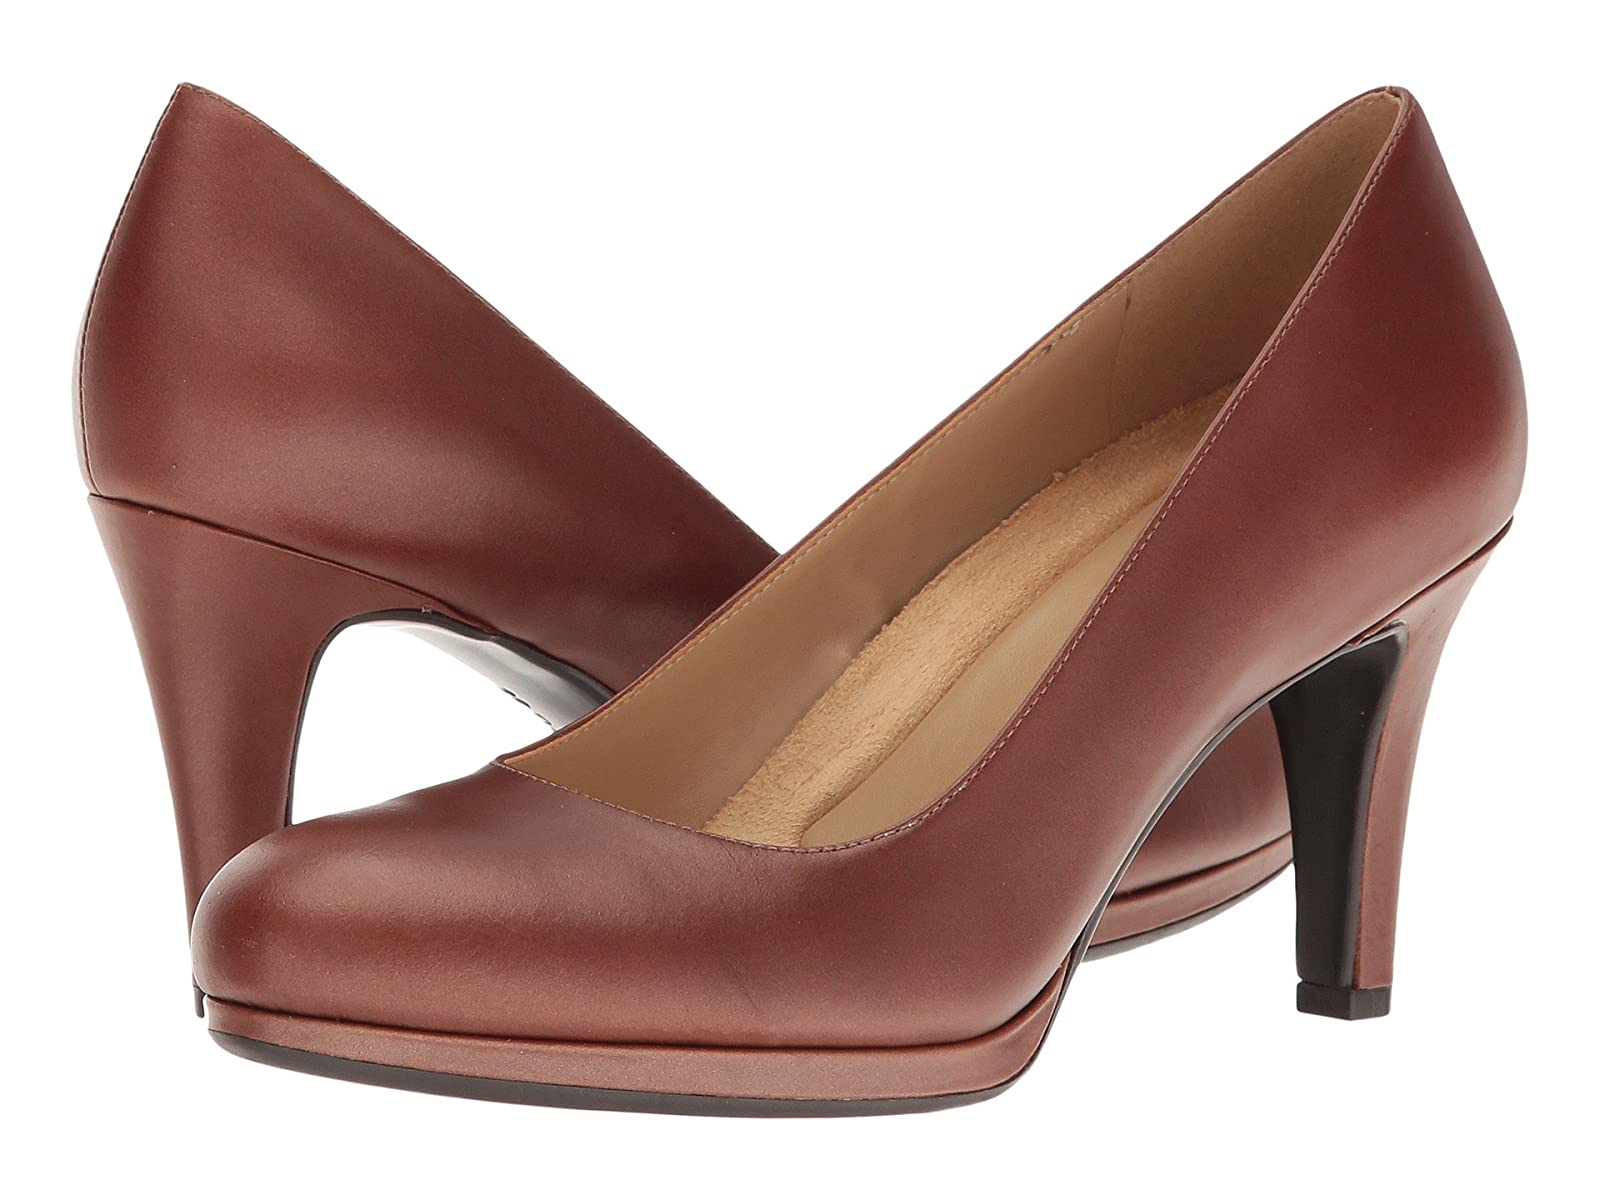 Naturalizer MichelleCheap and distinctive eye-catching shoes